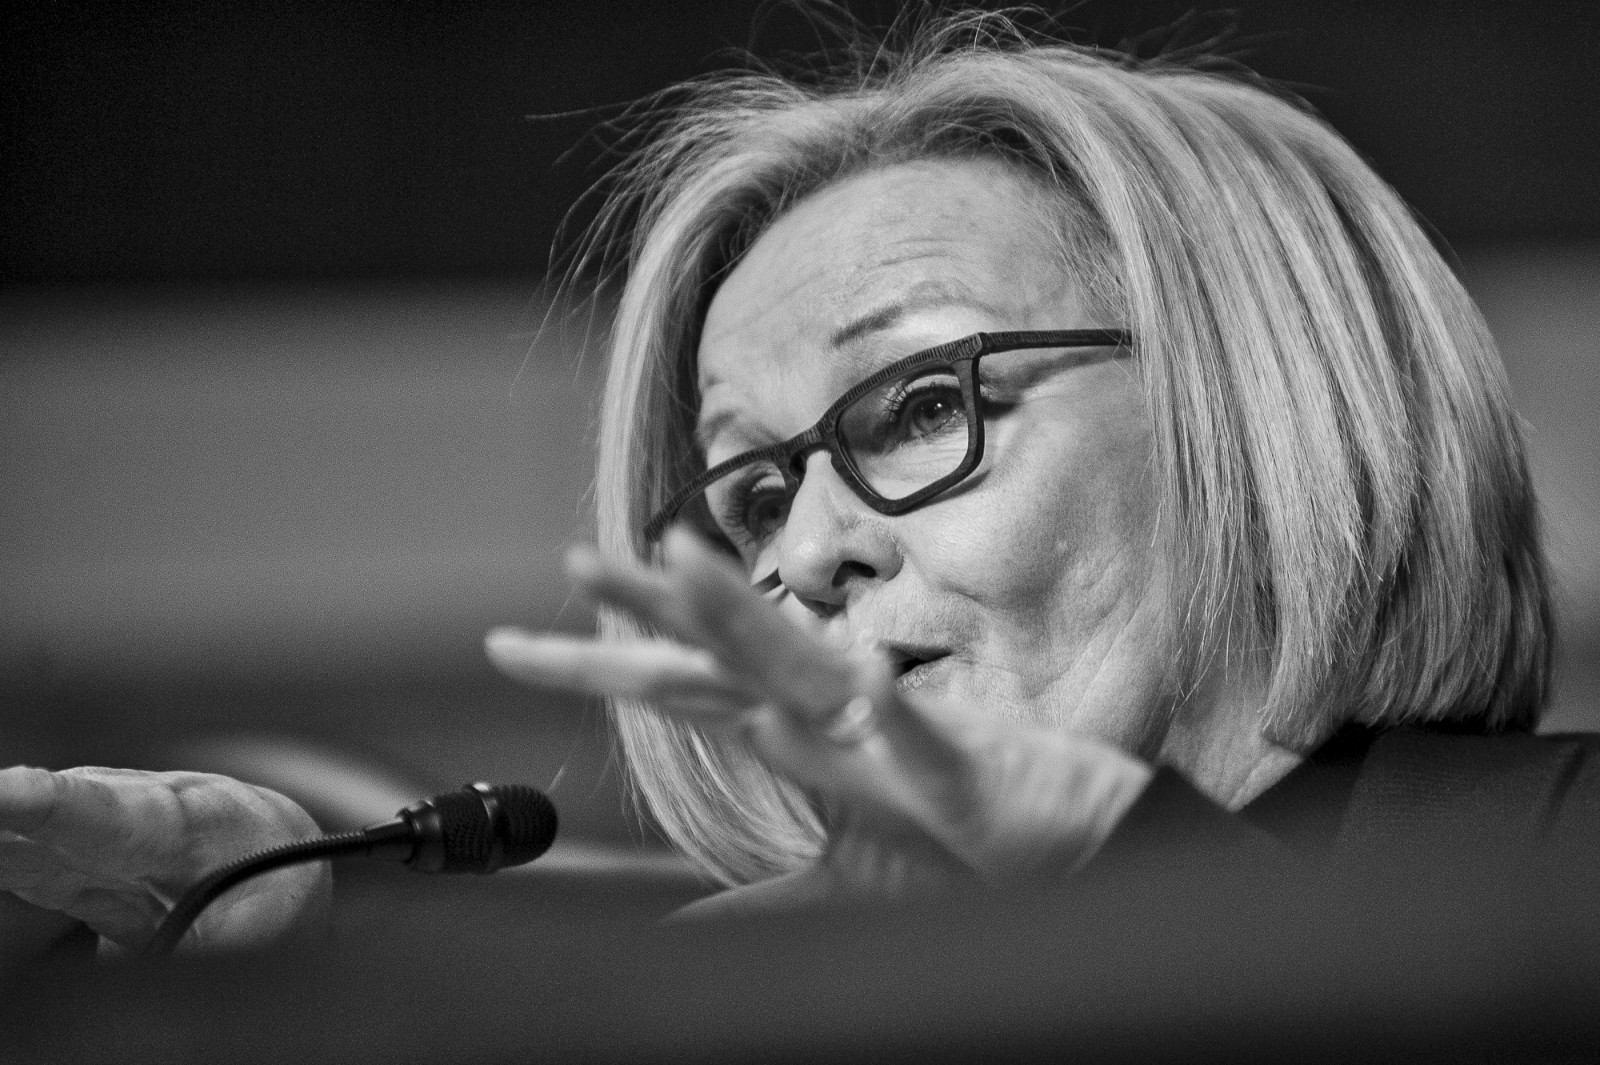 Senator Claire McCaskill (D-MO), questions former deputy secretary of defense, Ashton Carter, testifies before the Senate Armed Services Committee on Capitol Hill during a hearing on his nomination to be Defense Secretary on February 4, 2015. Carter is expected to be approved by the Senate, but still underwent a grilling from lawmakers President Obama's national security policies.